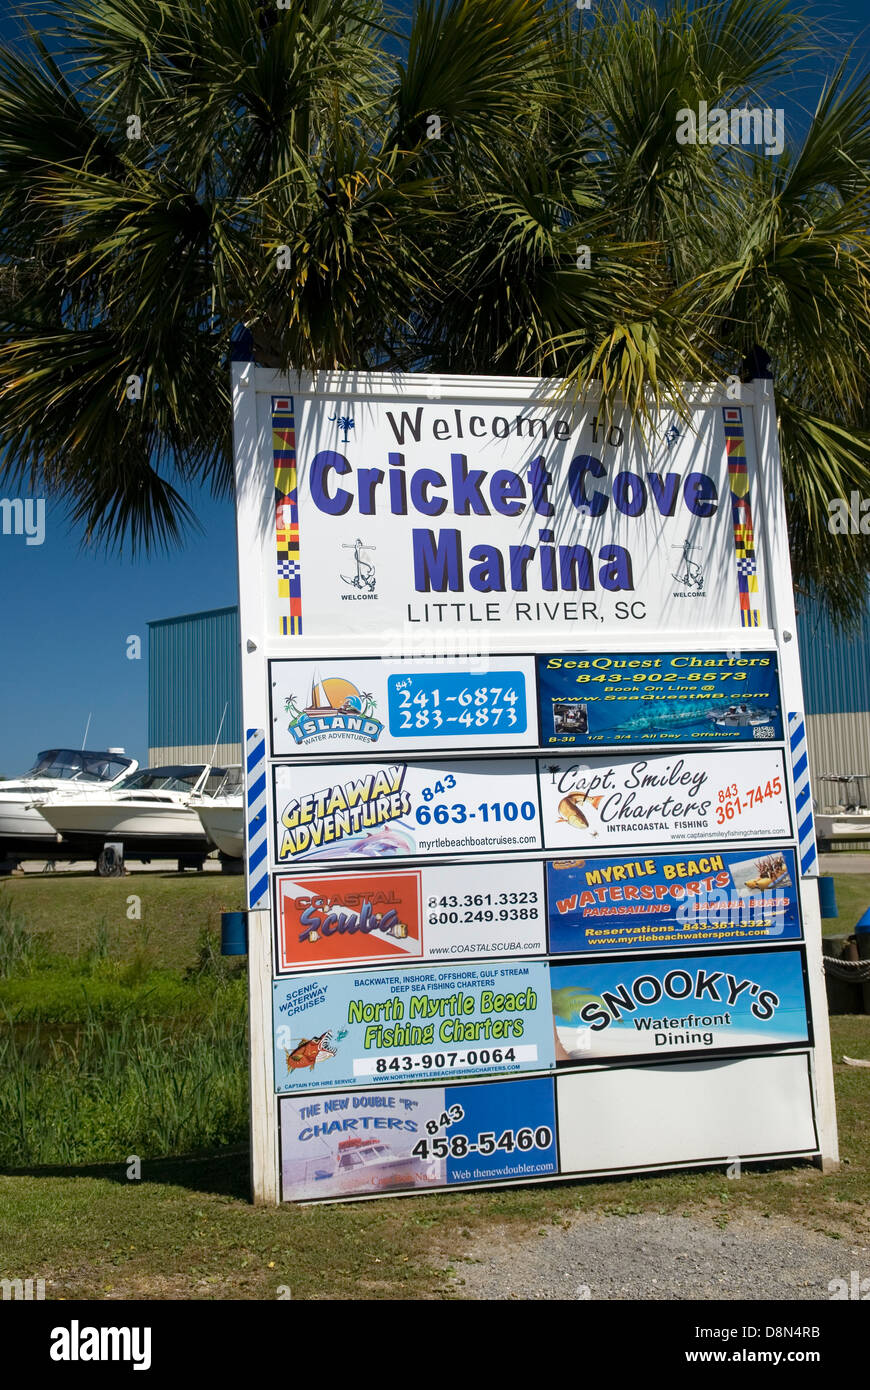 Cricket Cove Marina Welcome Sign Little River South Carolina